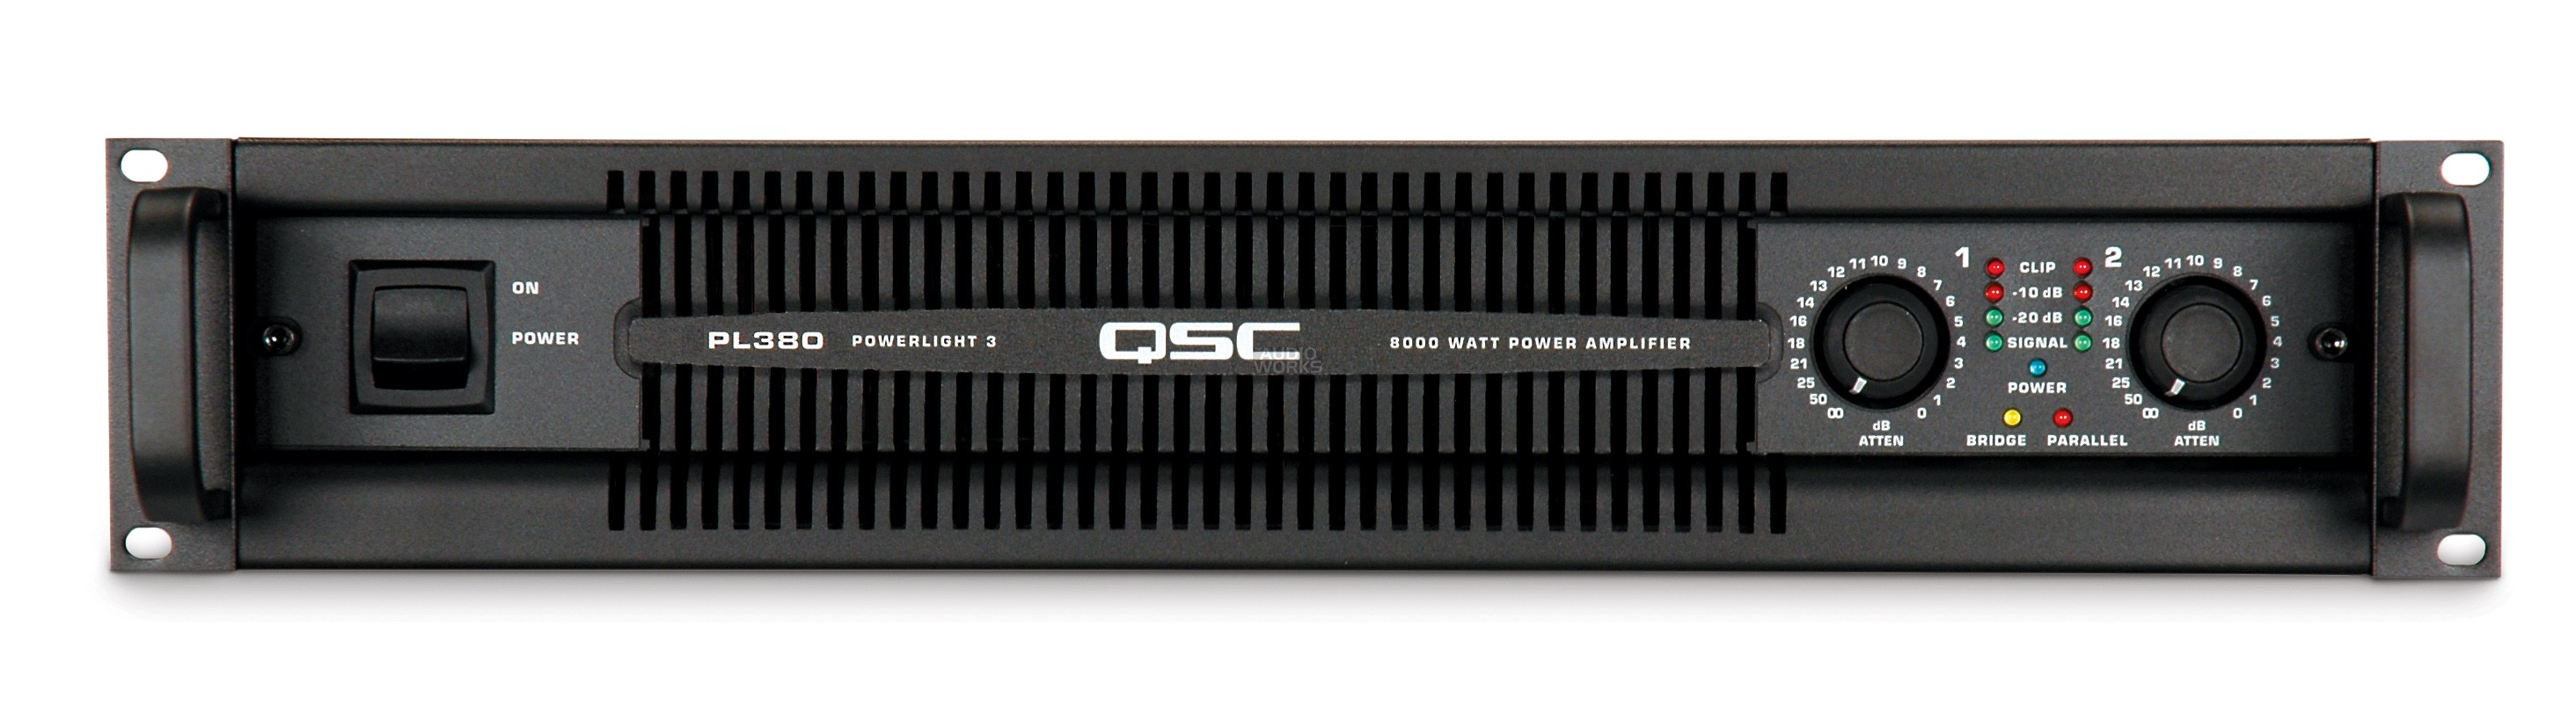 QSC POWERLIGHT 3 PL380 8000W PROFESSIONAL POWER AMPLIFIER